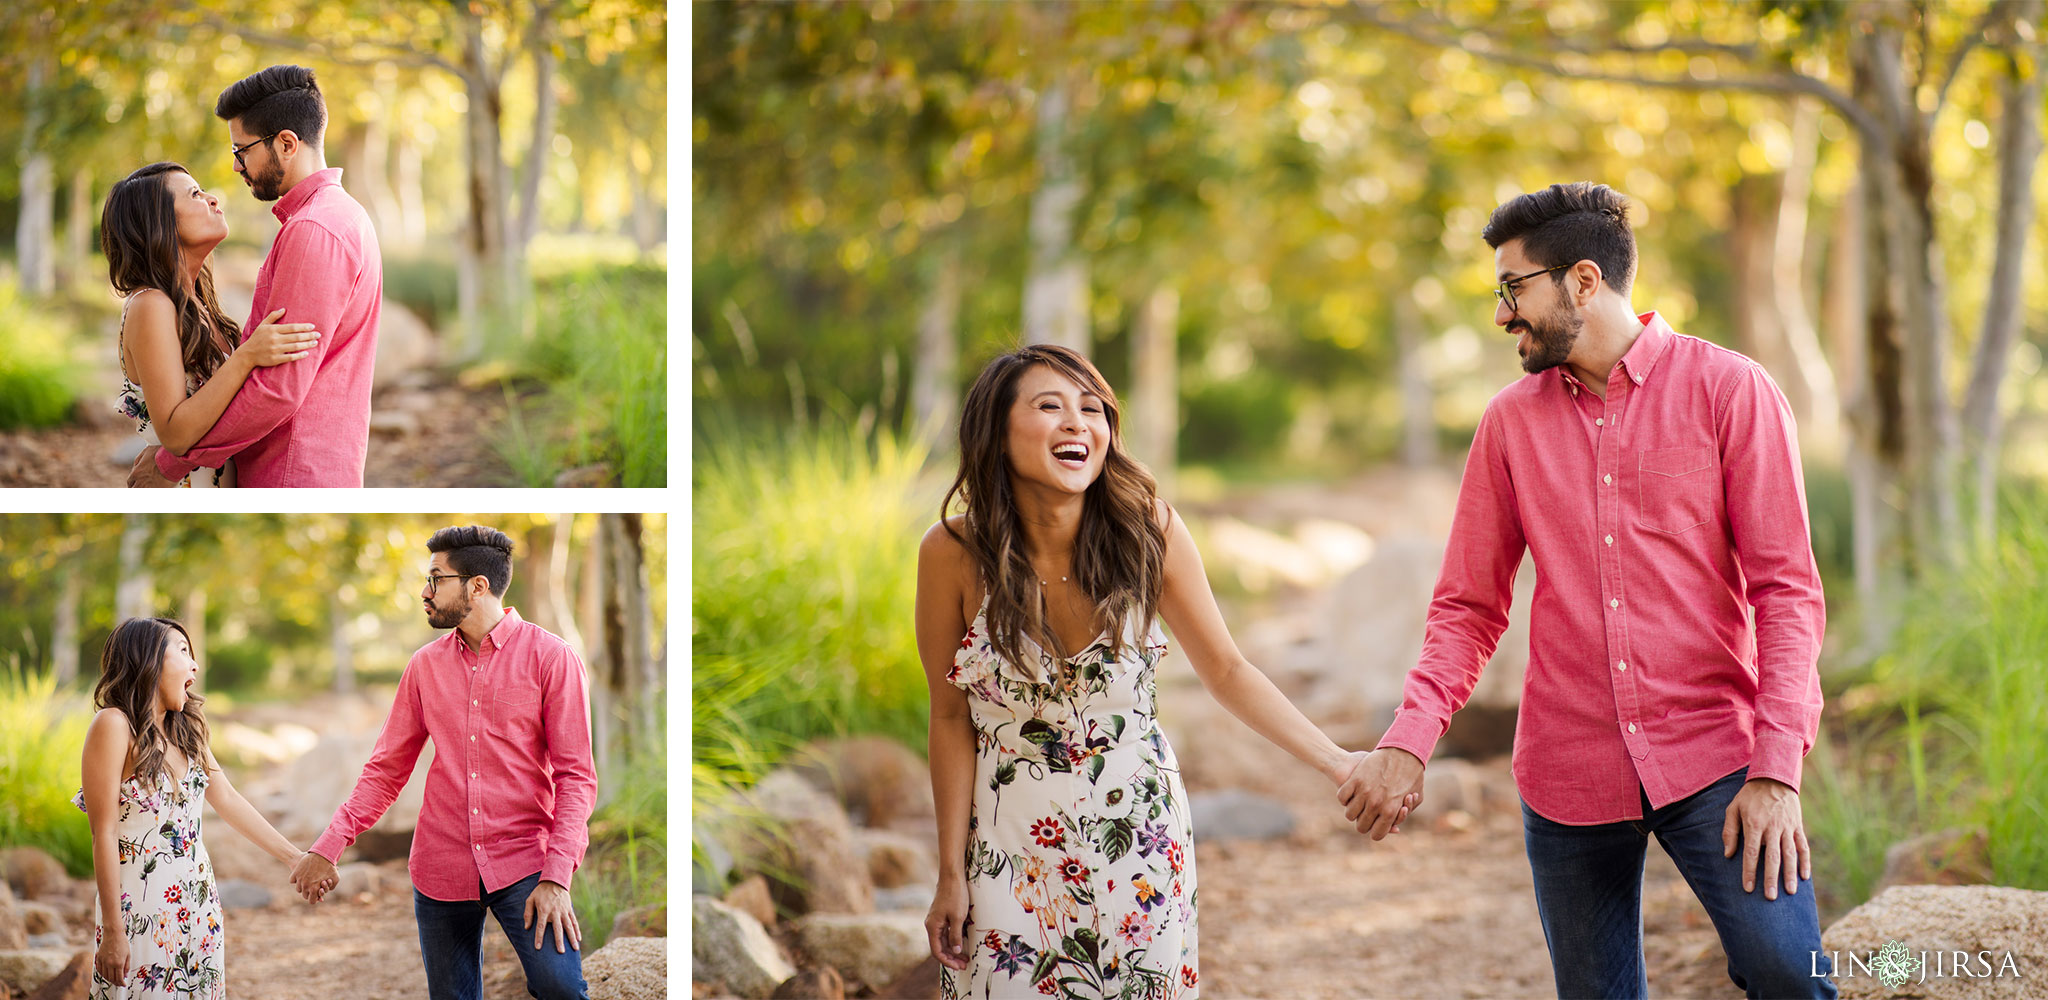 008 jeffrey open space engagement photography